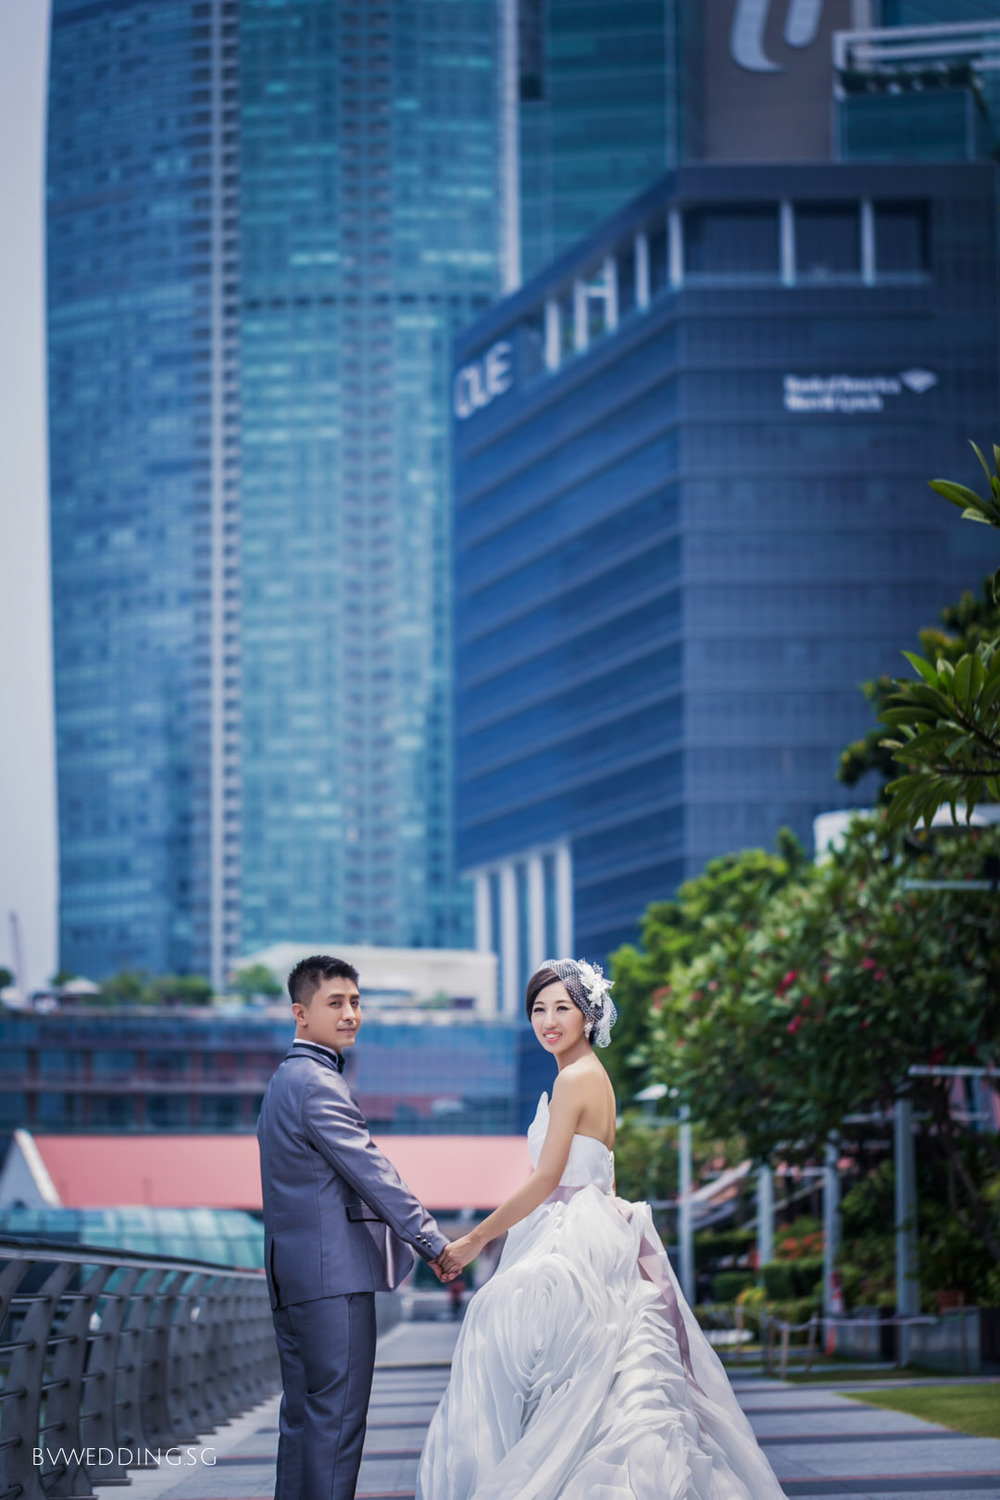 Pre-wedding Photoshoot at Merlion